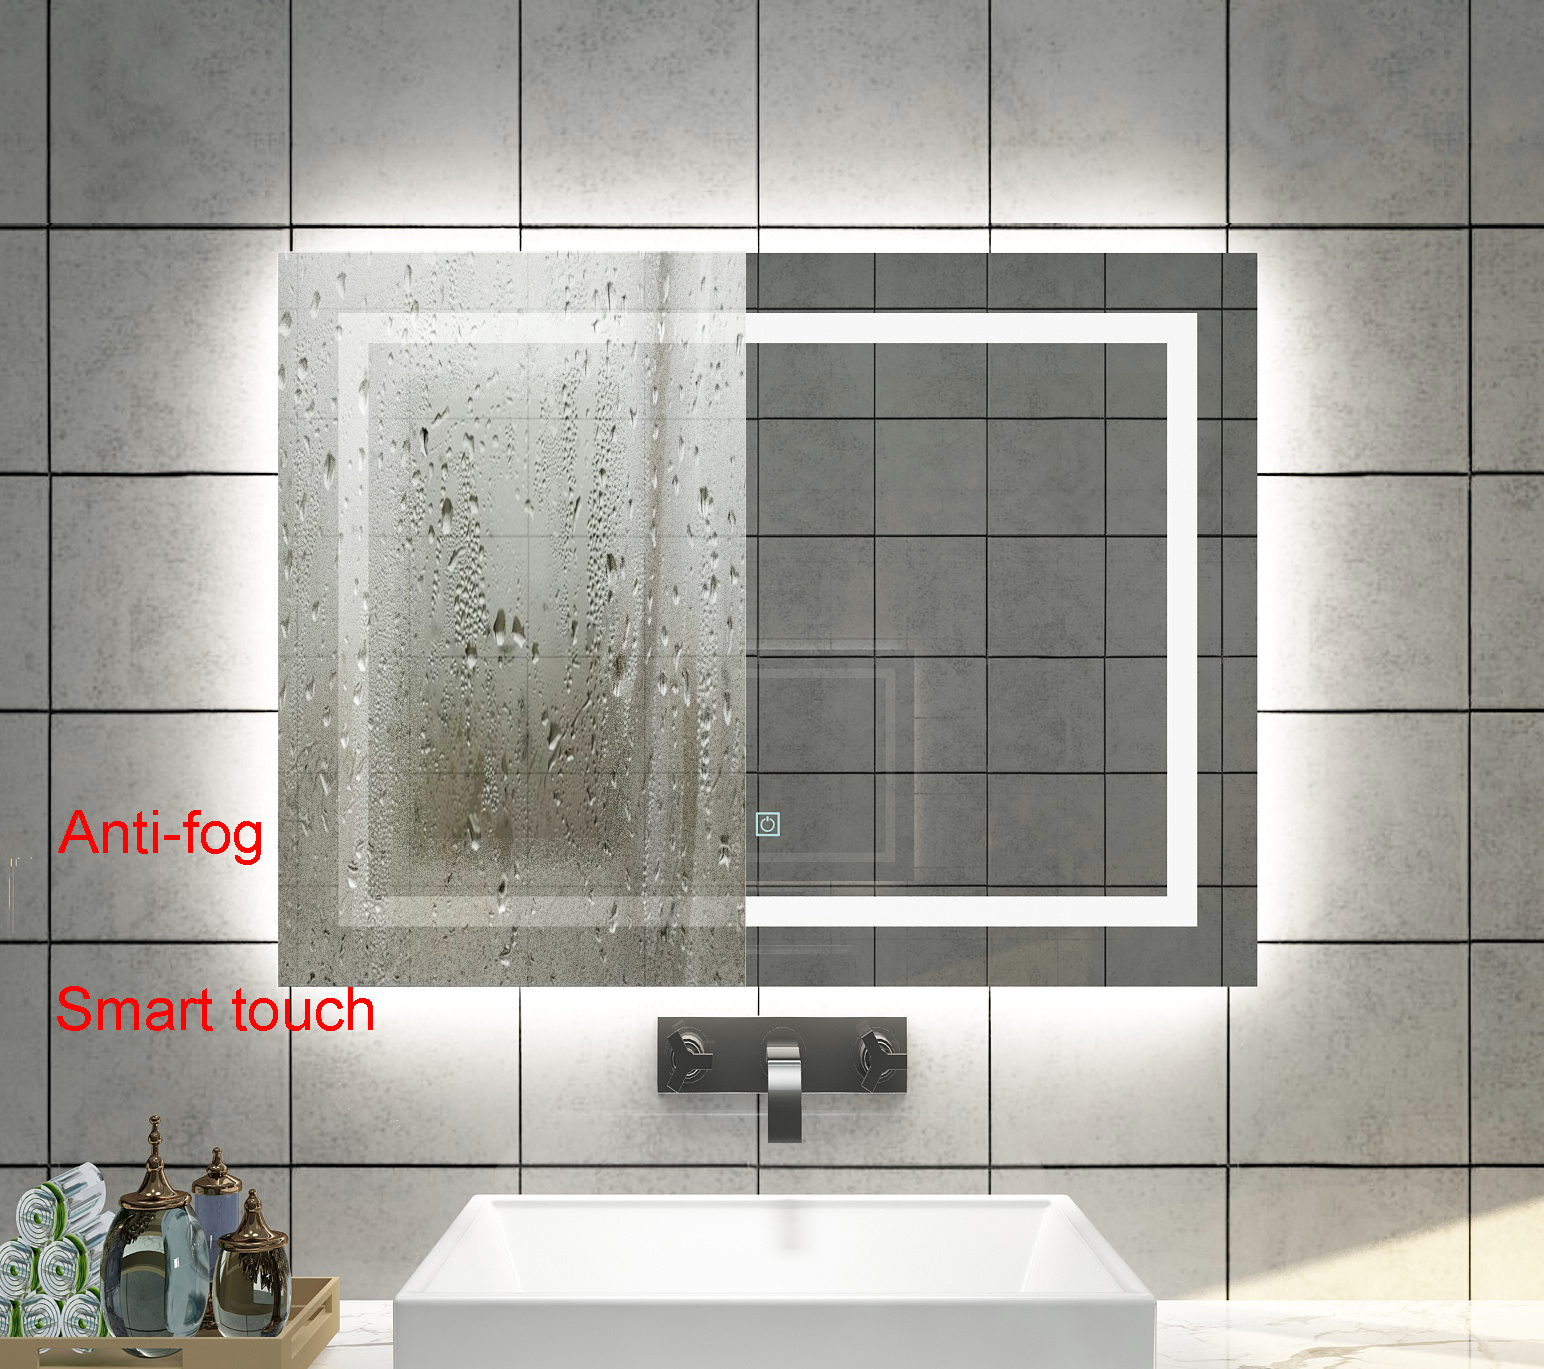 Diyhd Wall Mount Led Lighted Bathroom Mirror Vanity Defogger Square Lights Touch Light Mirror Led Wall Mount Mirror Square Bathroom Mirrorwall Bathroom Mirror Aliexpress